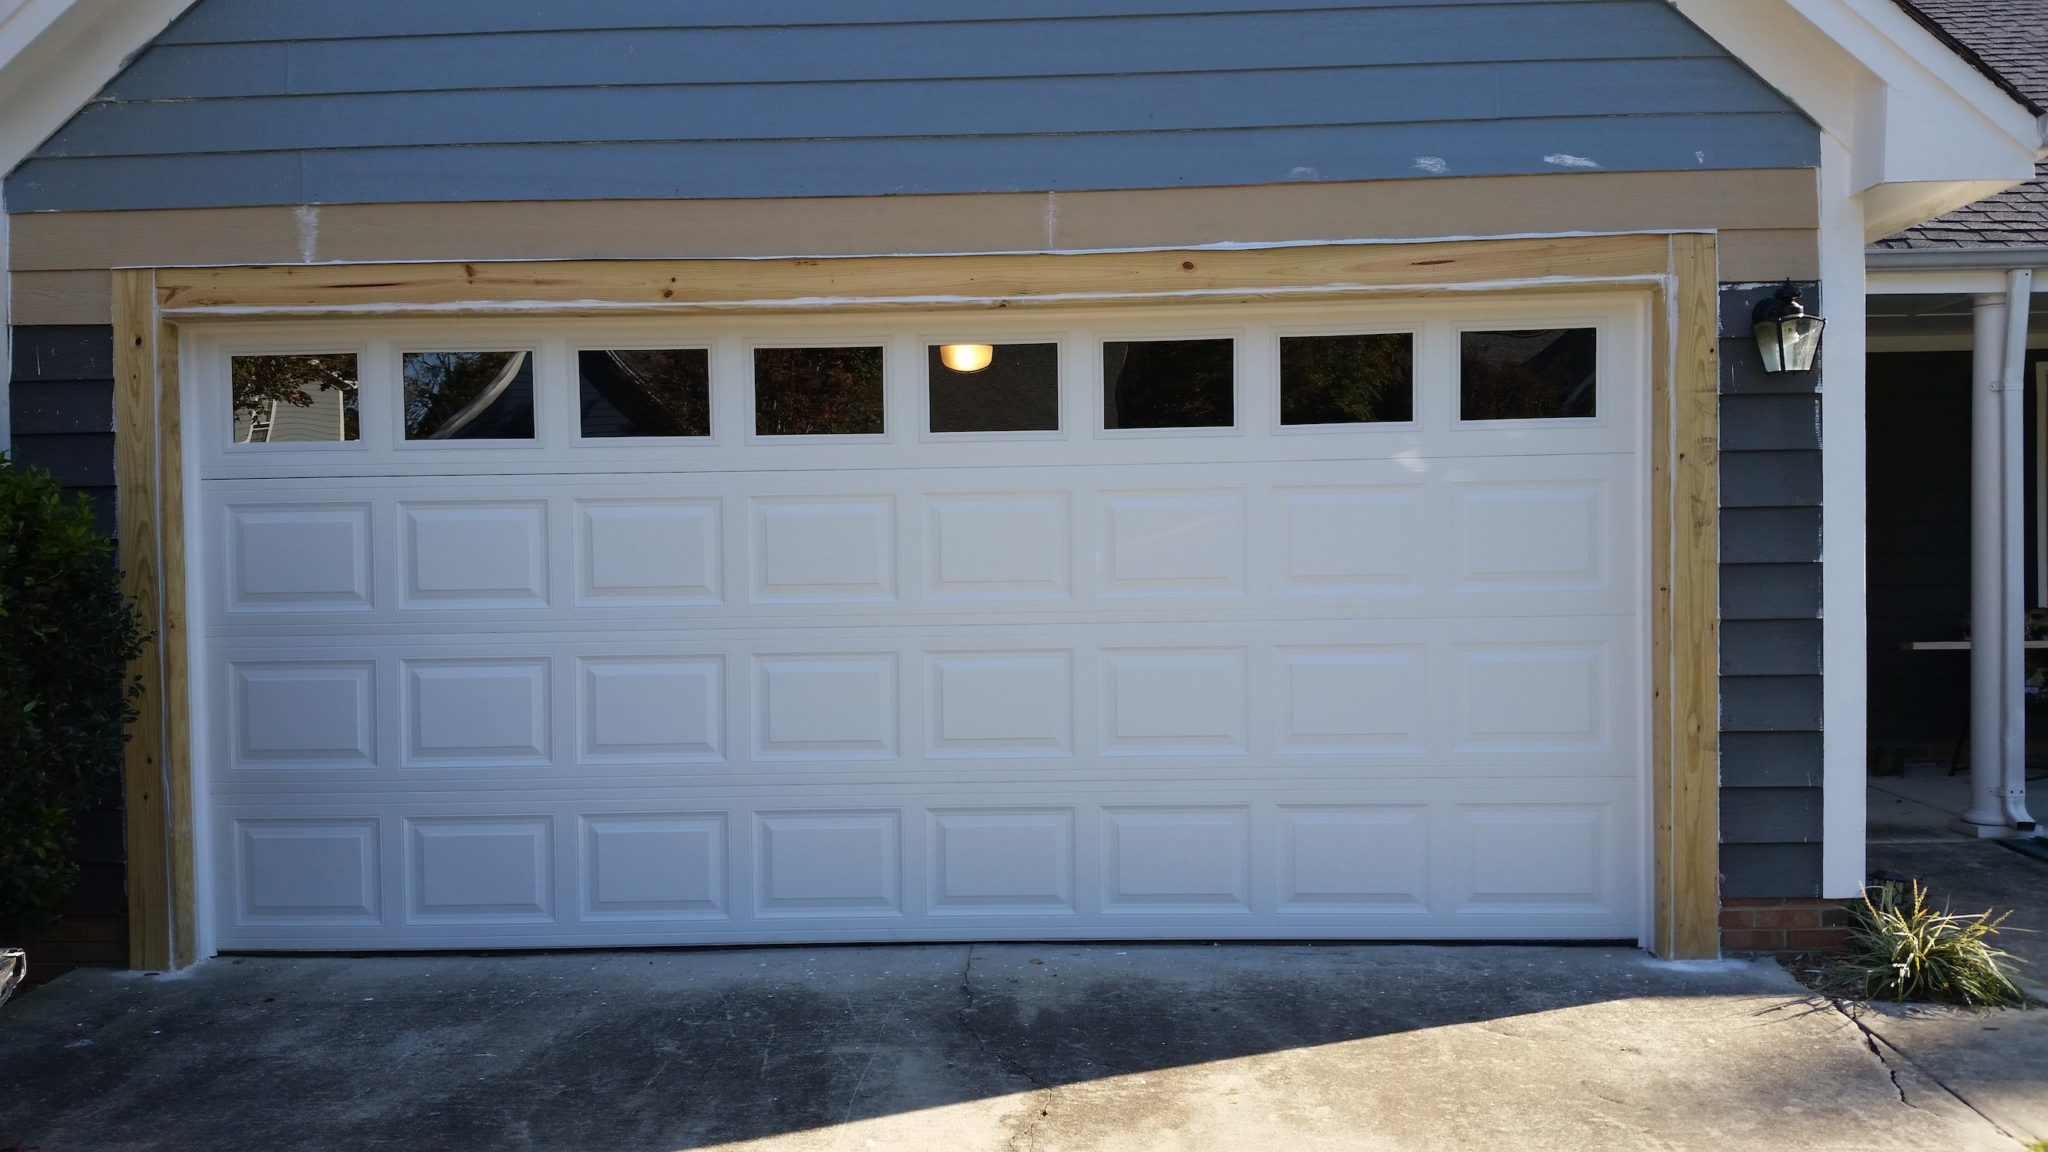 South charlotte residential garage door framing repair for Garage doors